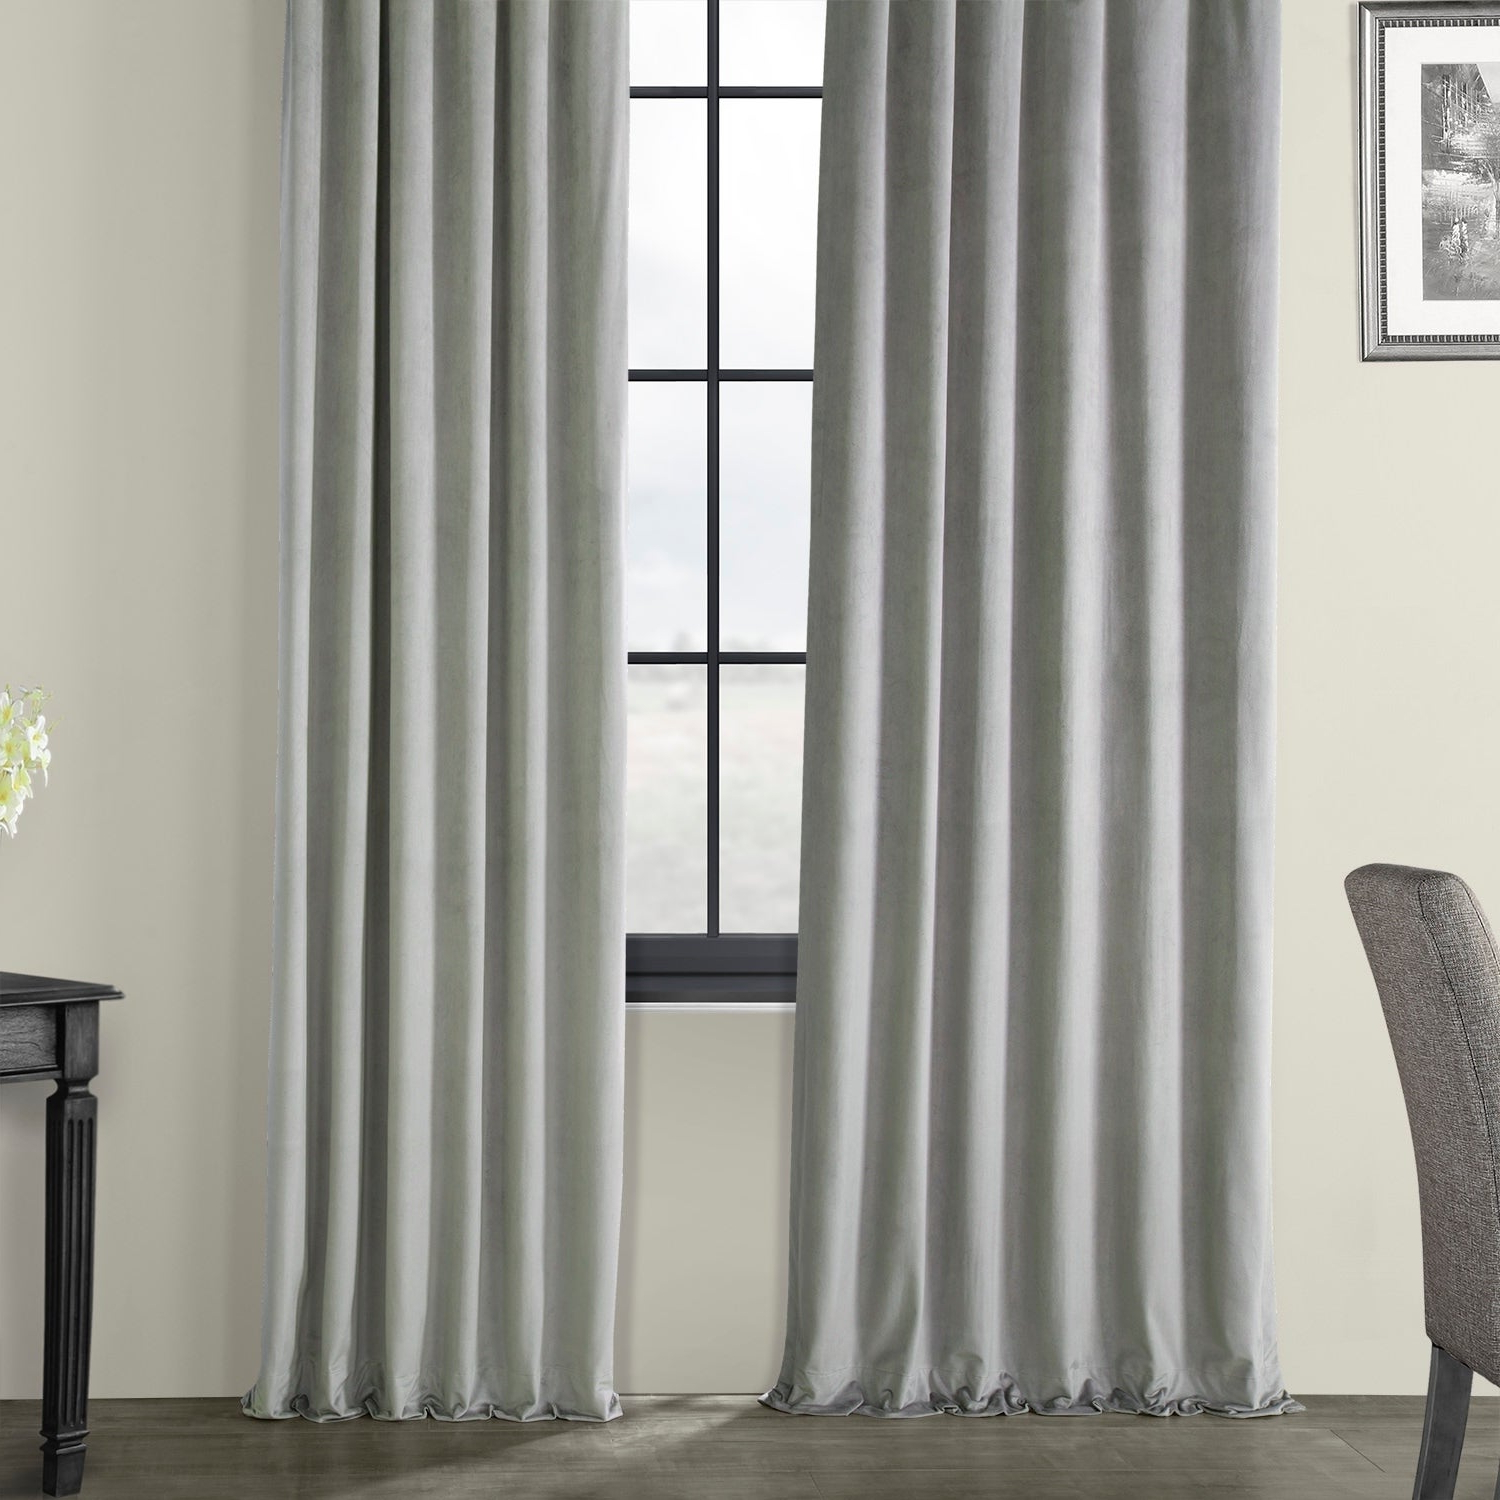 Well Liked Velvet Dream Silver Curtain Panel Pairs Regarding Exclusive Fabrics Signature Silver Grey Velvet Blackout Curtain Panel (View 8 of 20)